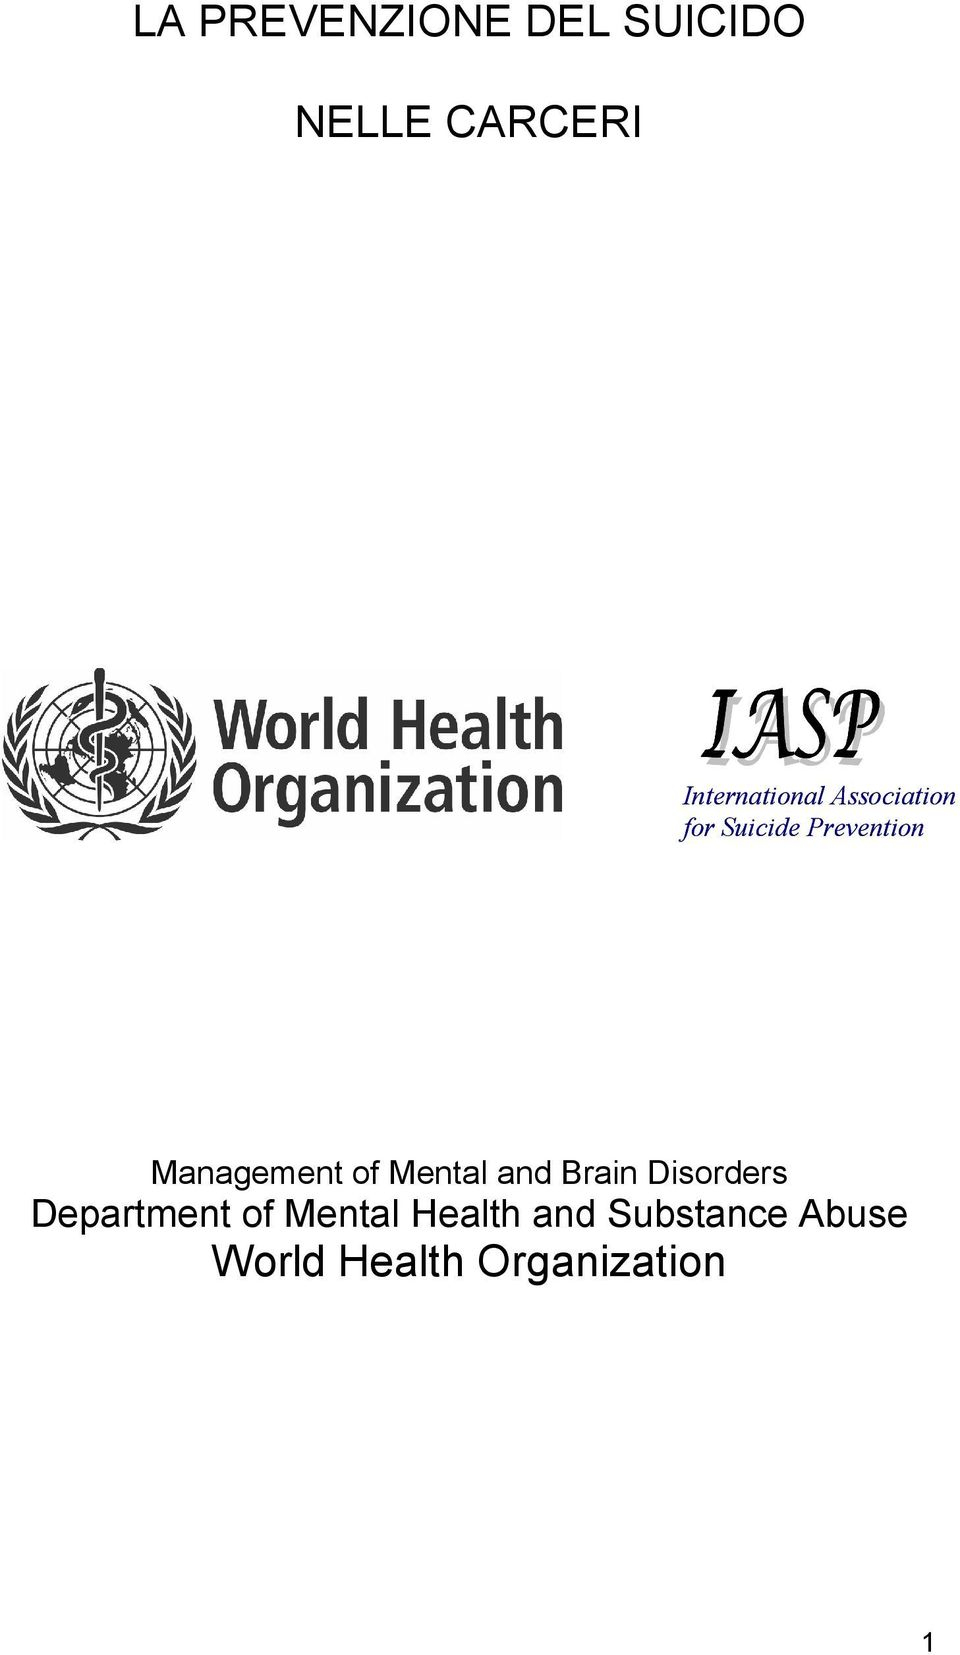 Management of Mental and Brain Disorders Department